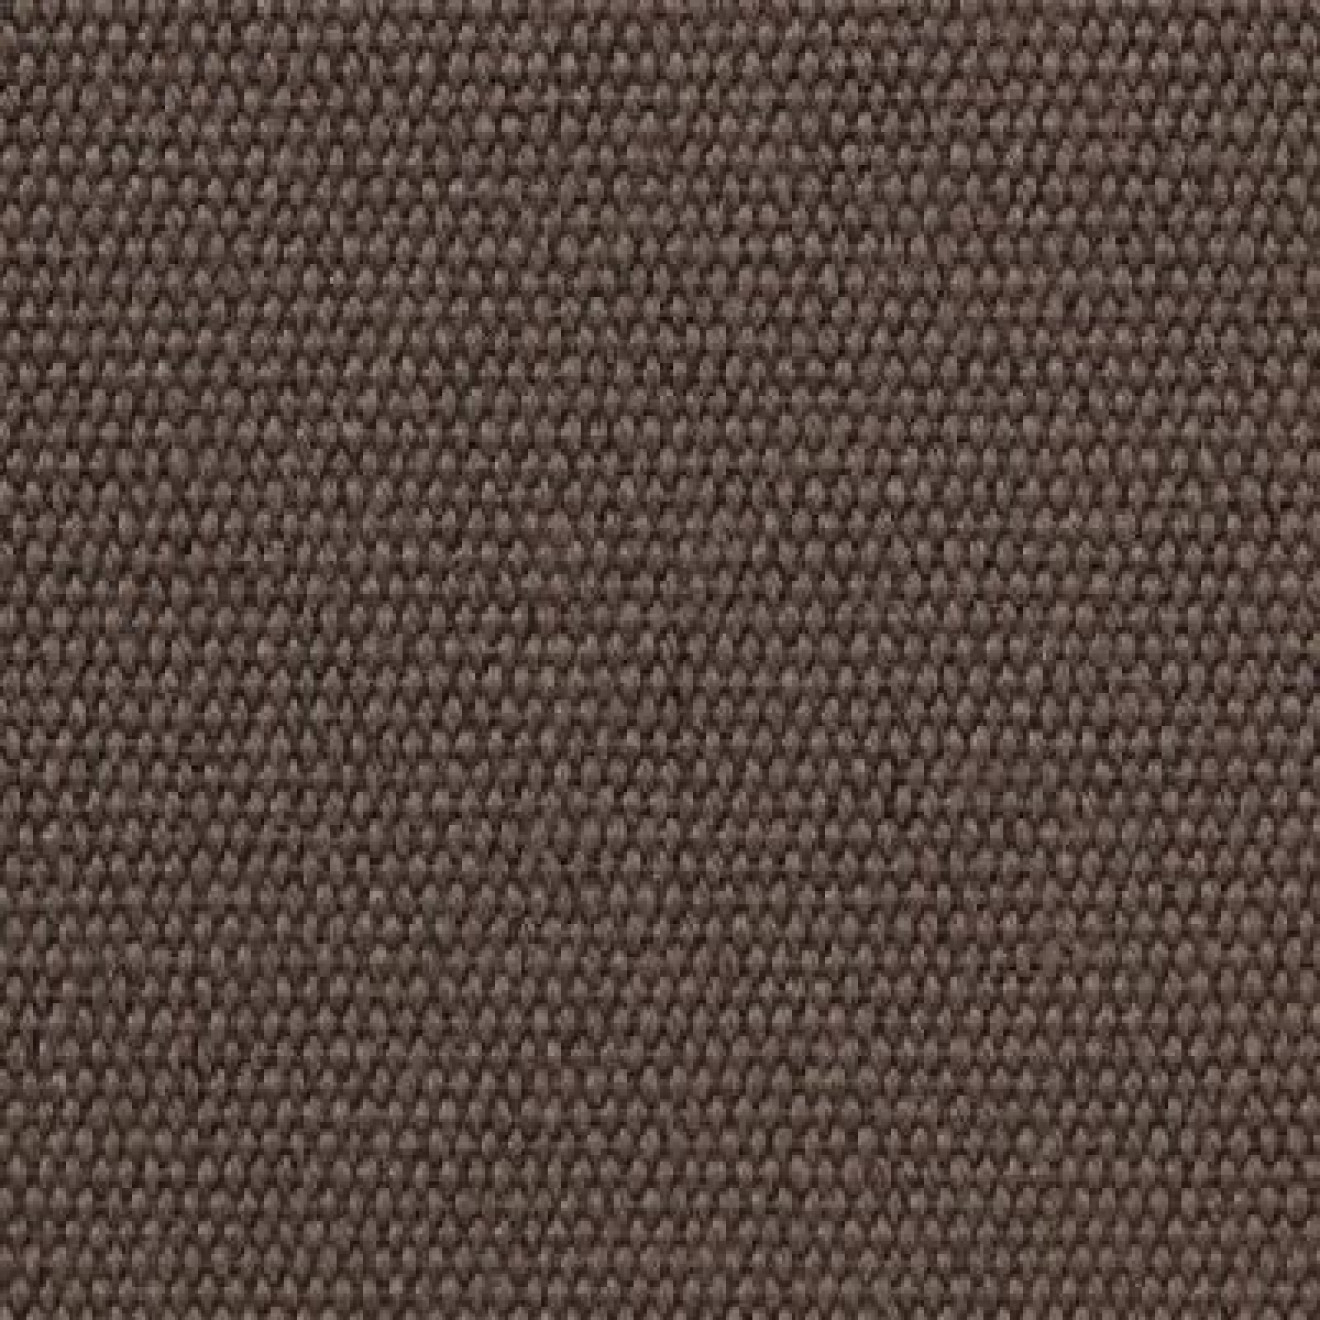 Rolle halbiert - Acrylstoff 20 Taupe